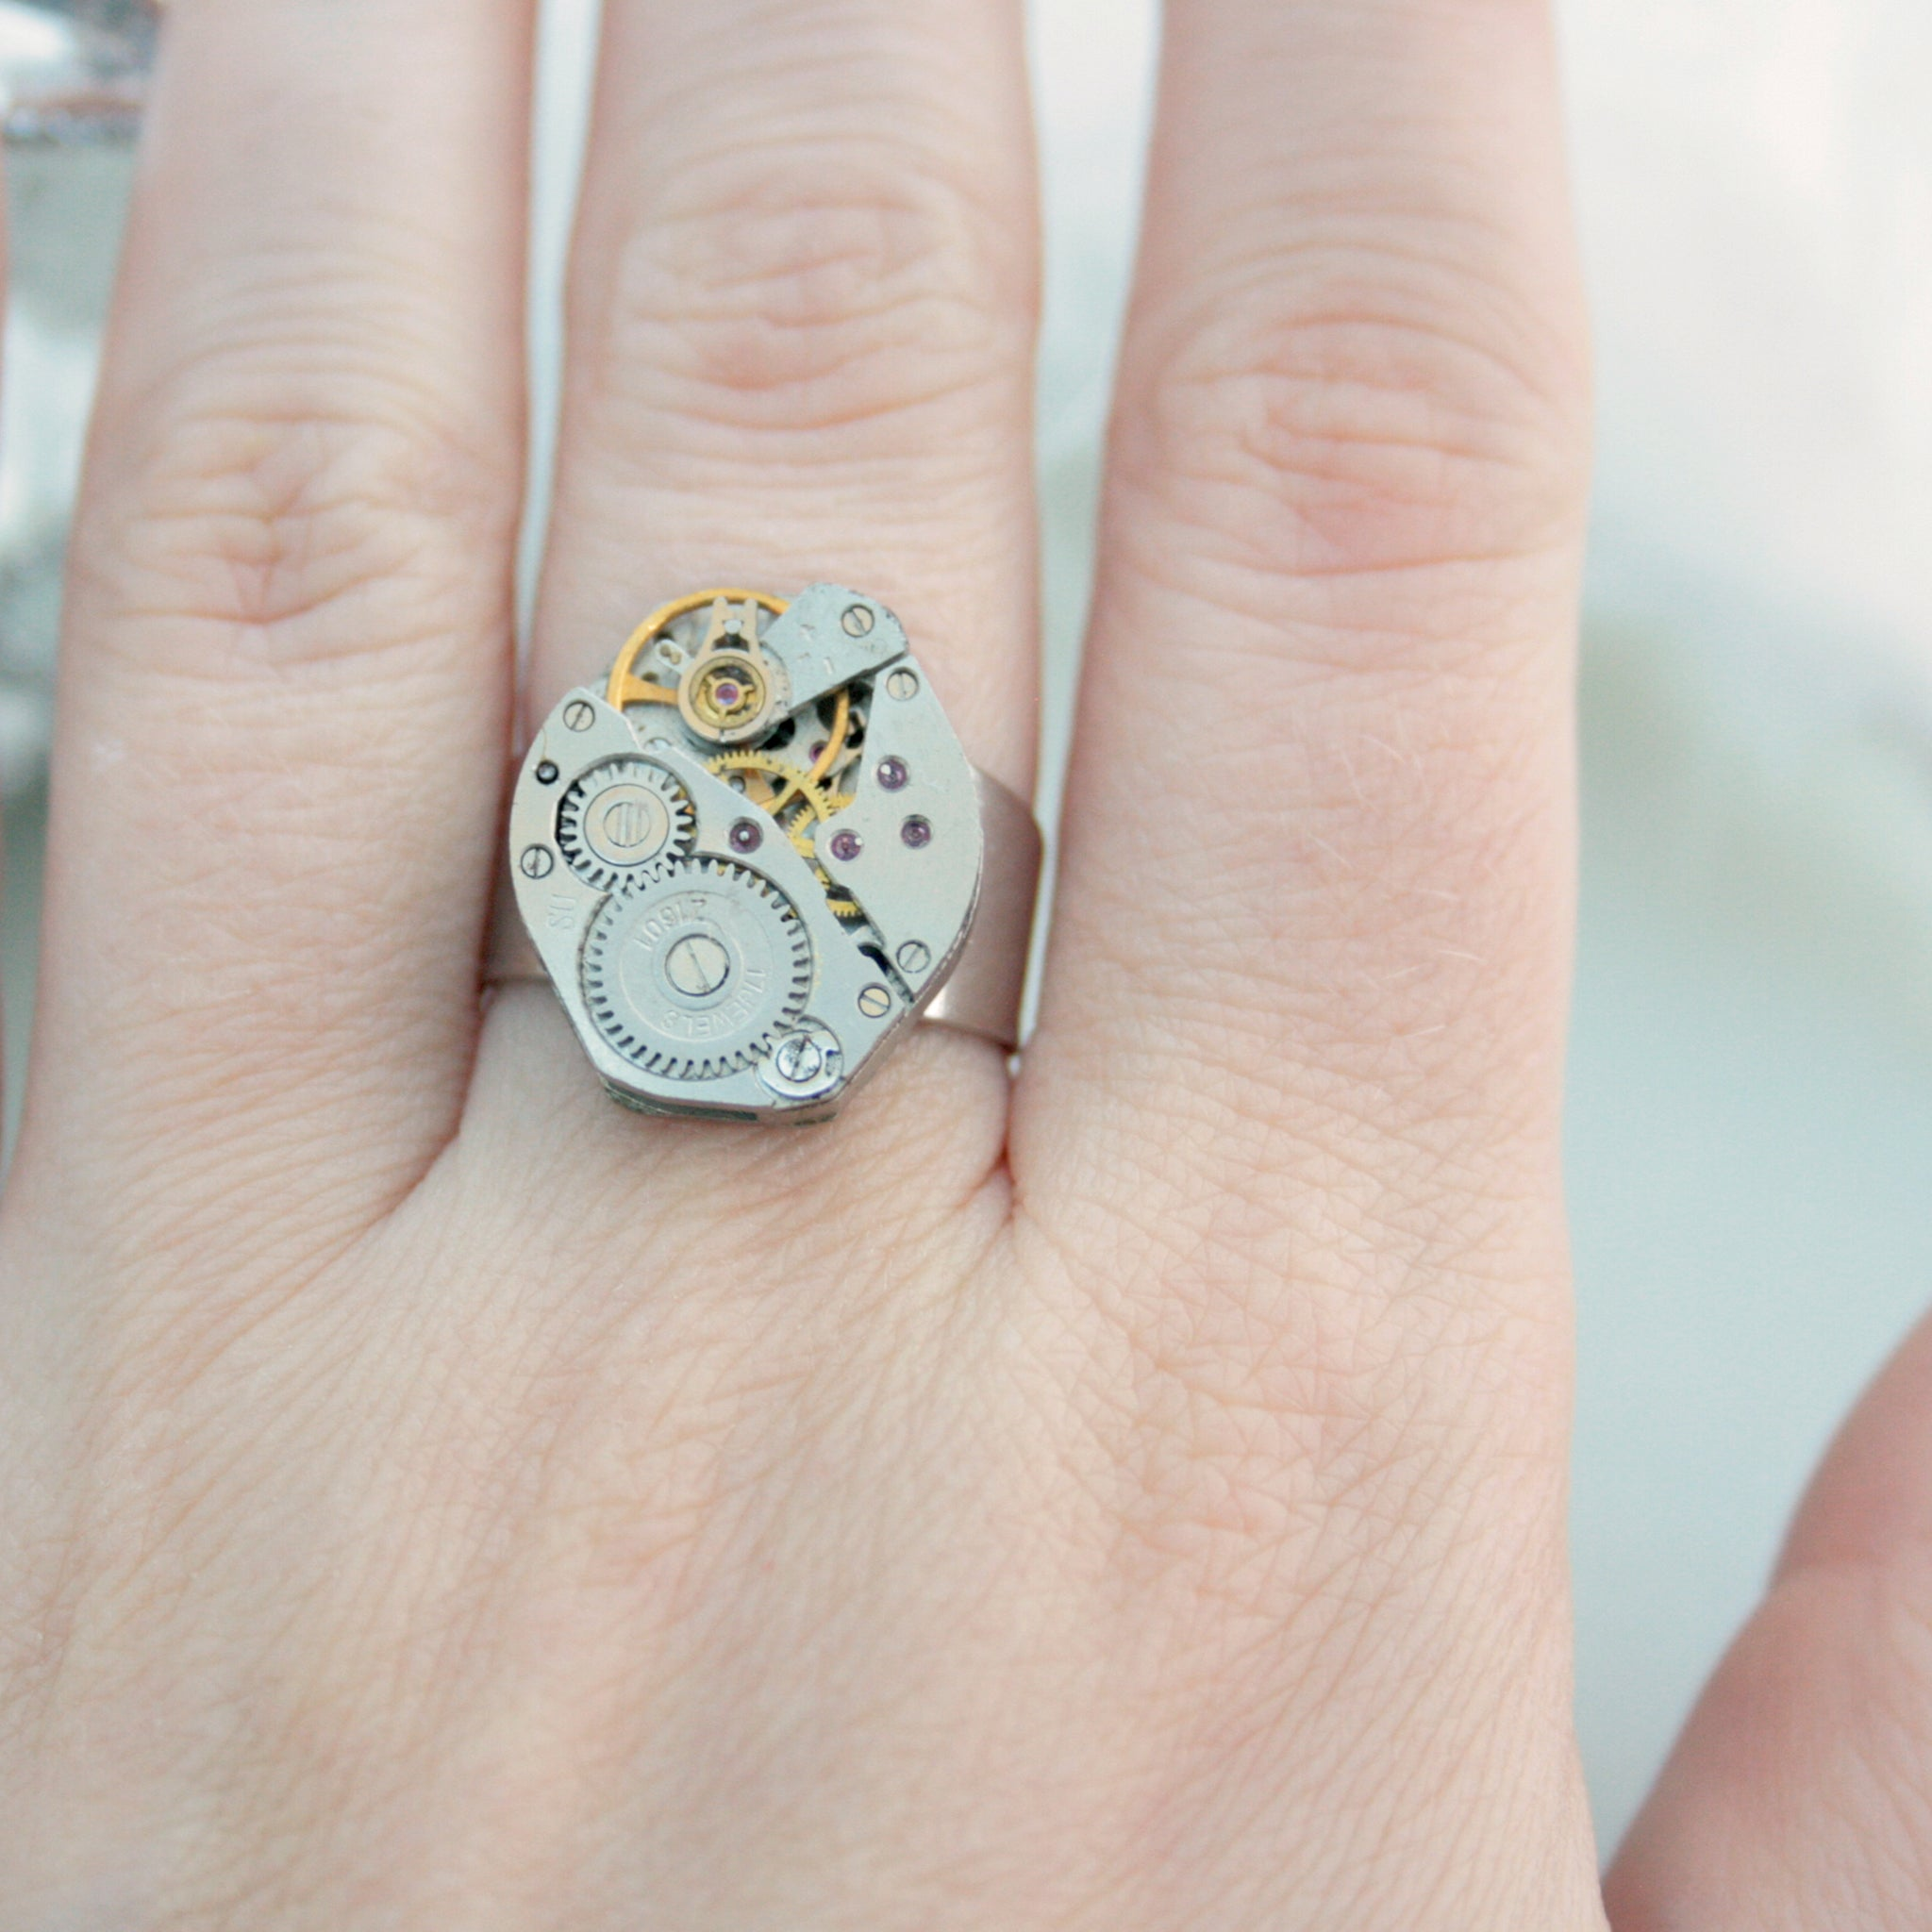 Steampunk Signet Ring made of real watch on a hand